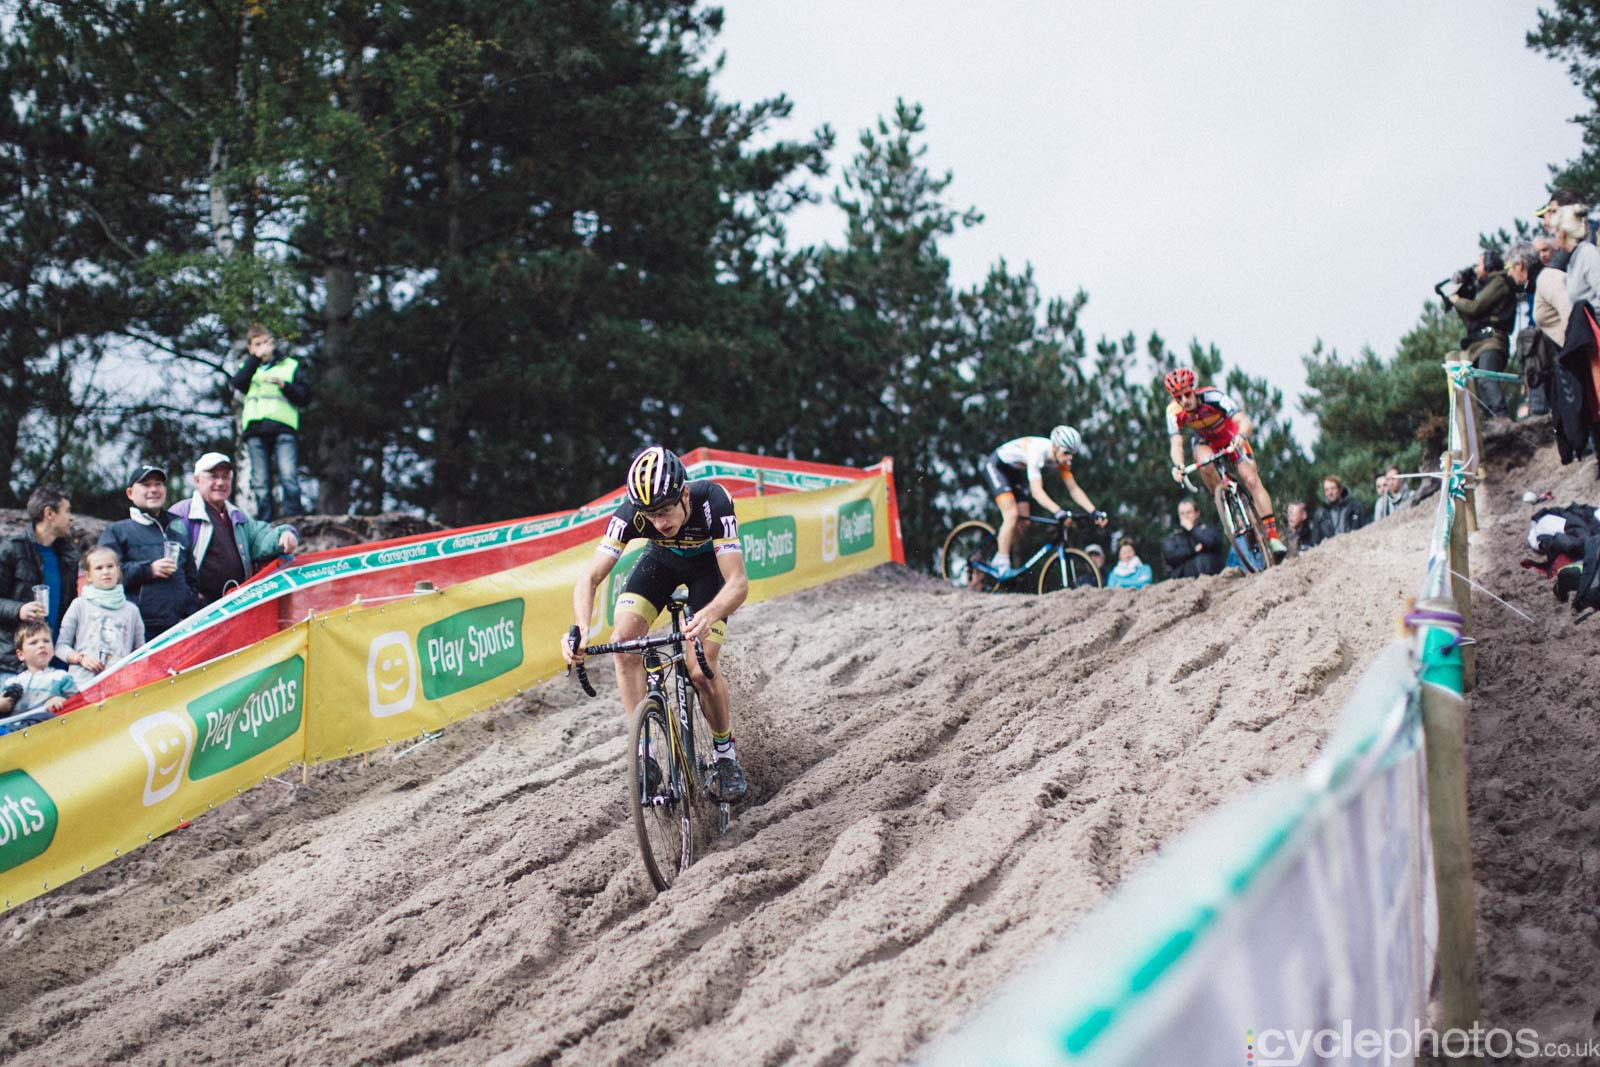 2015-cyclephotos-cyclocross-zonhoven-131646-quinten-hermans